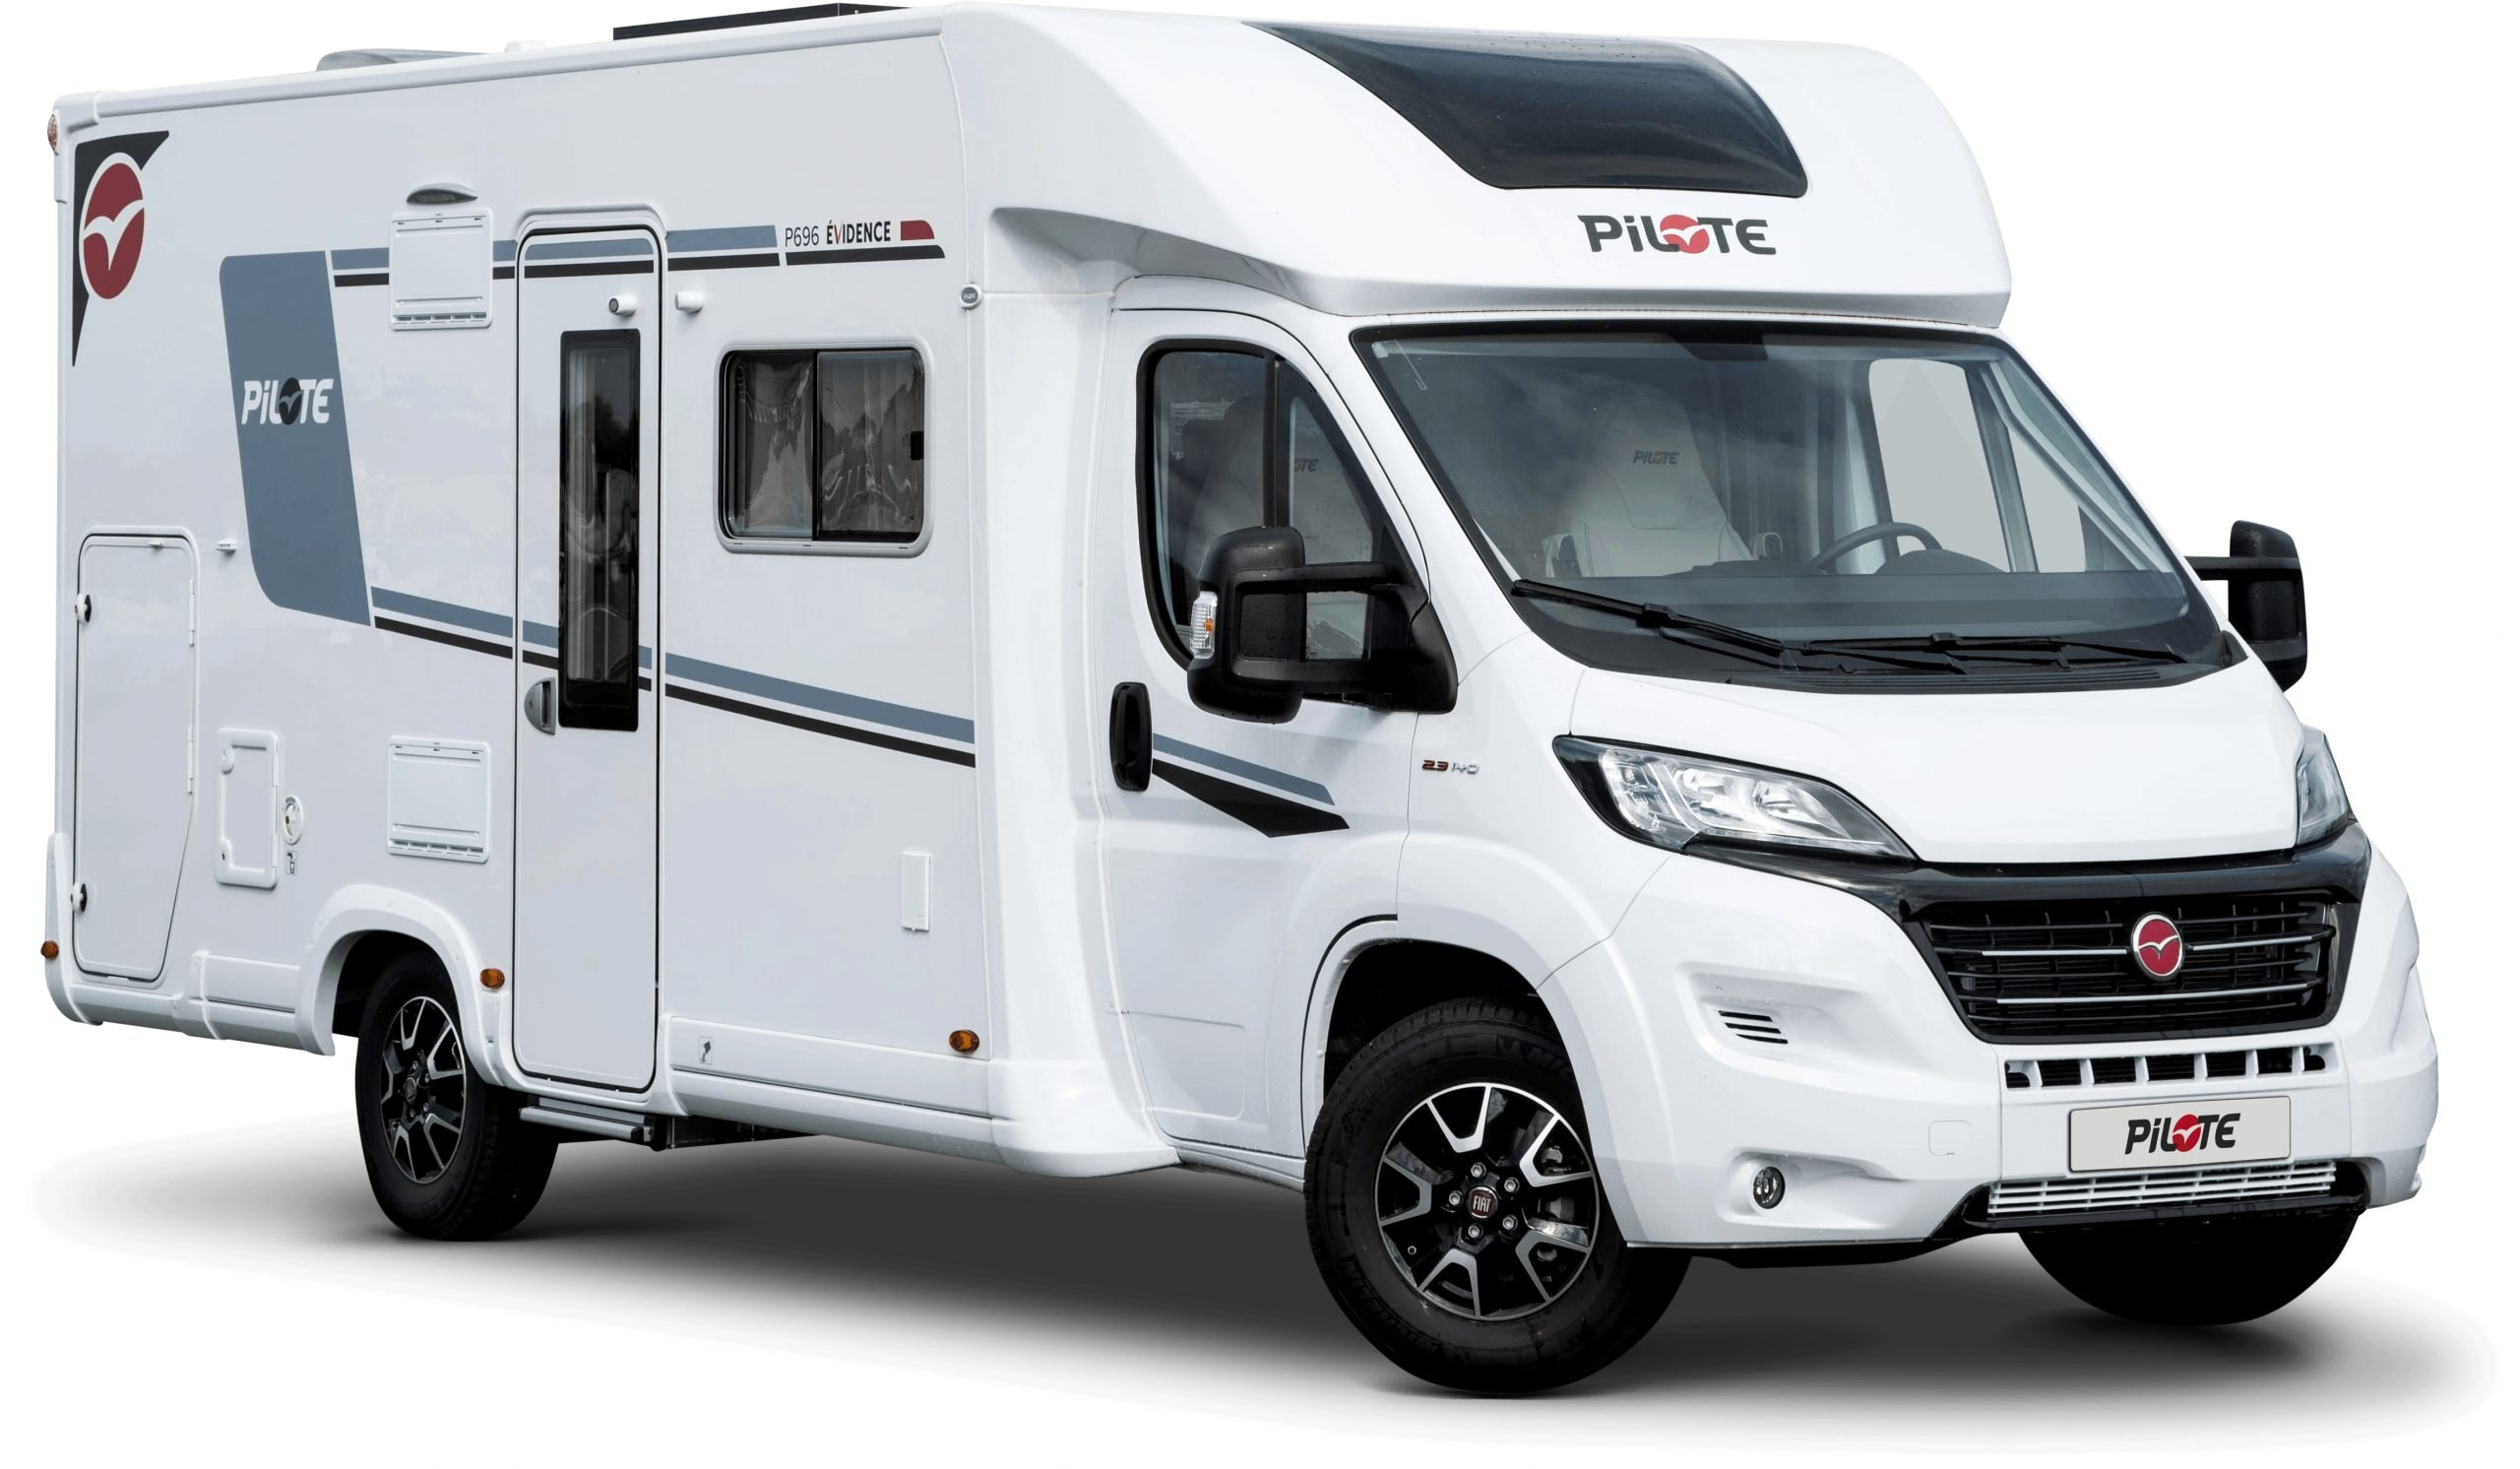 Why Choose a Pilote Motorhome?: Image of a Pilote Motorhome on a white background.